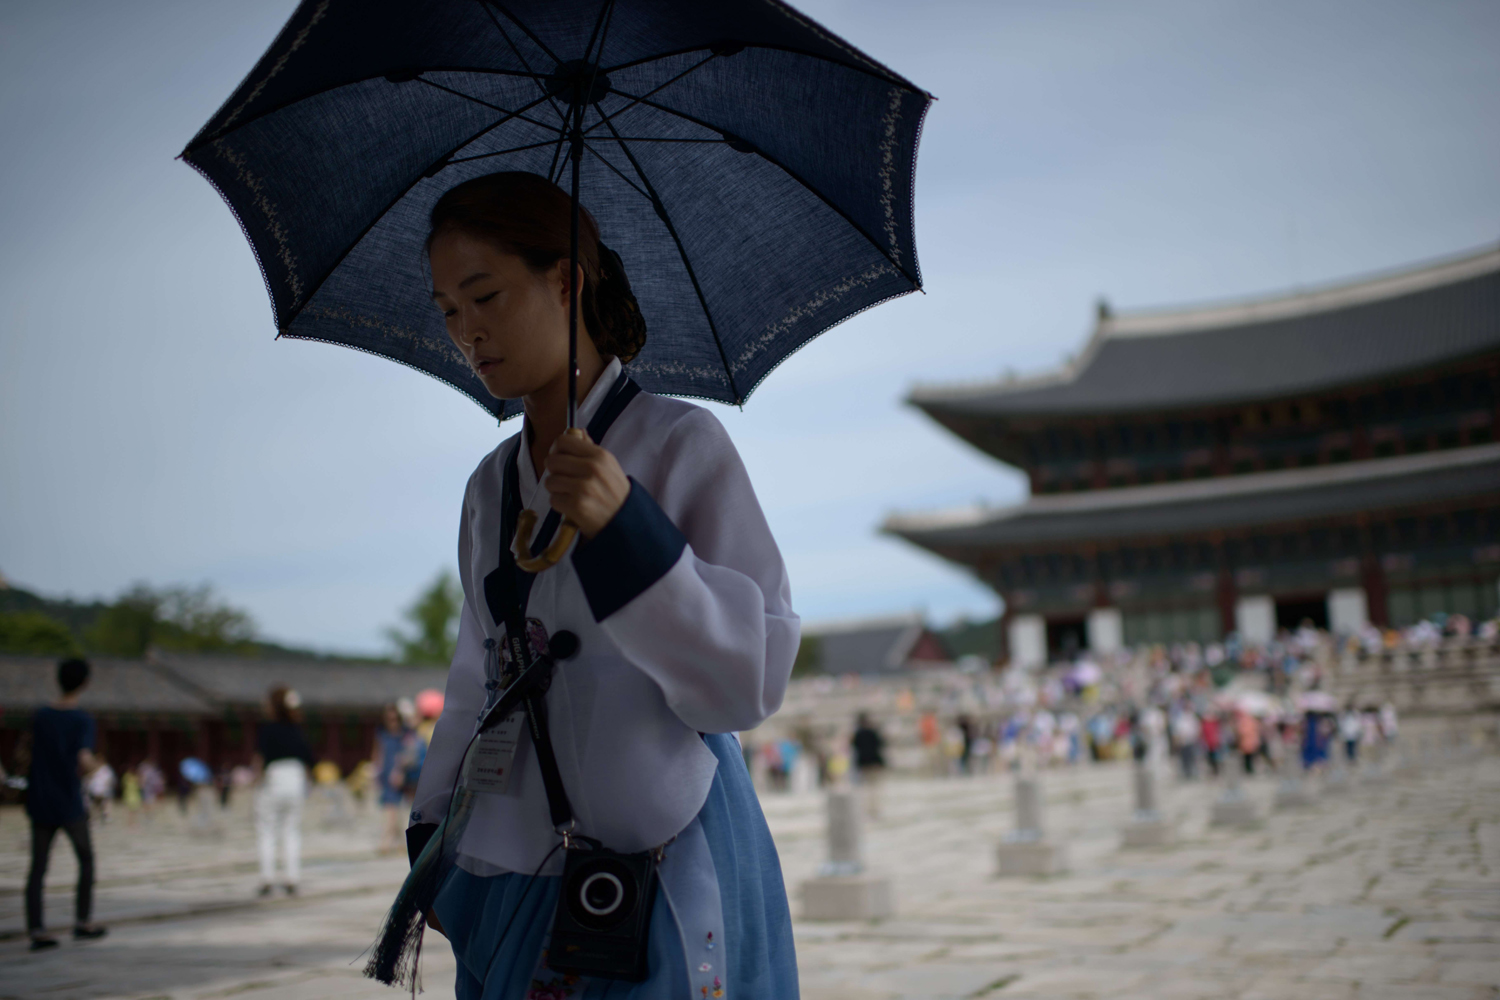 Aug. 27, 2014. A South Korean tour guide walks before the Gyeongbokgung Palace in Seoul.